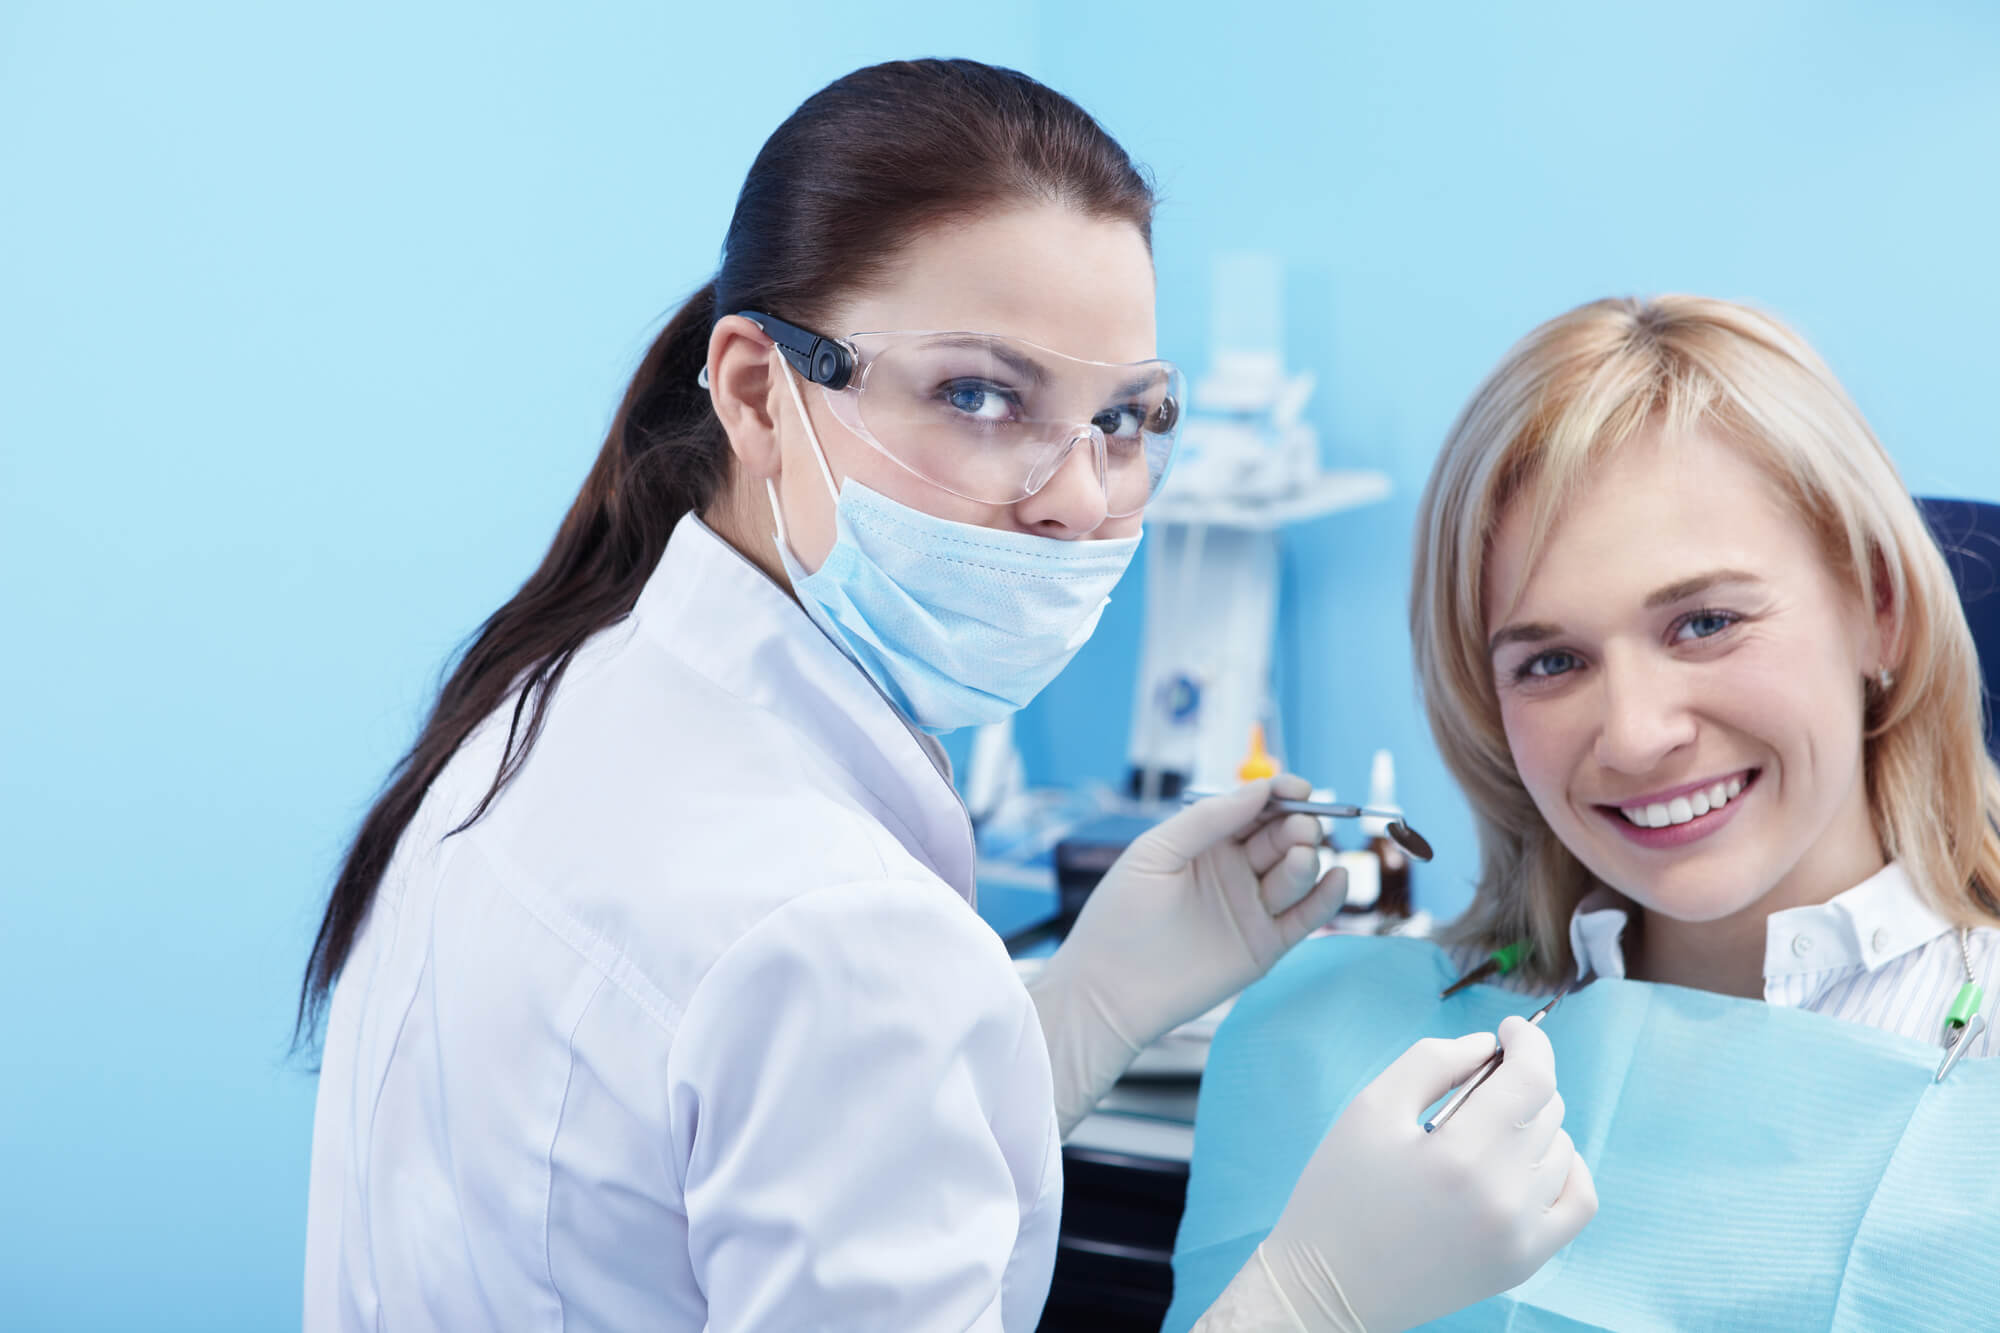 who offers the best dental crown west palm beach?